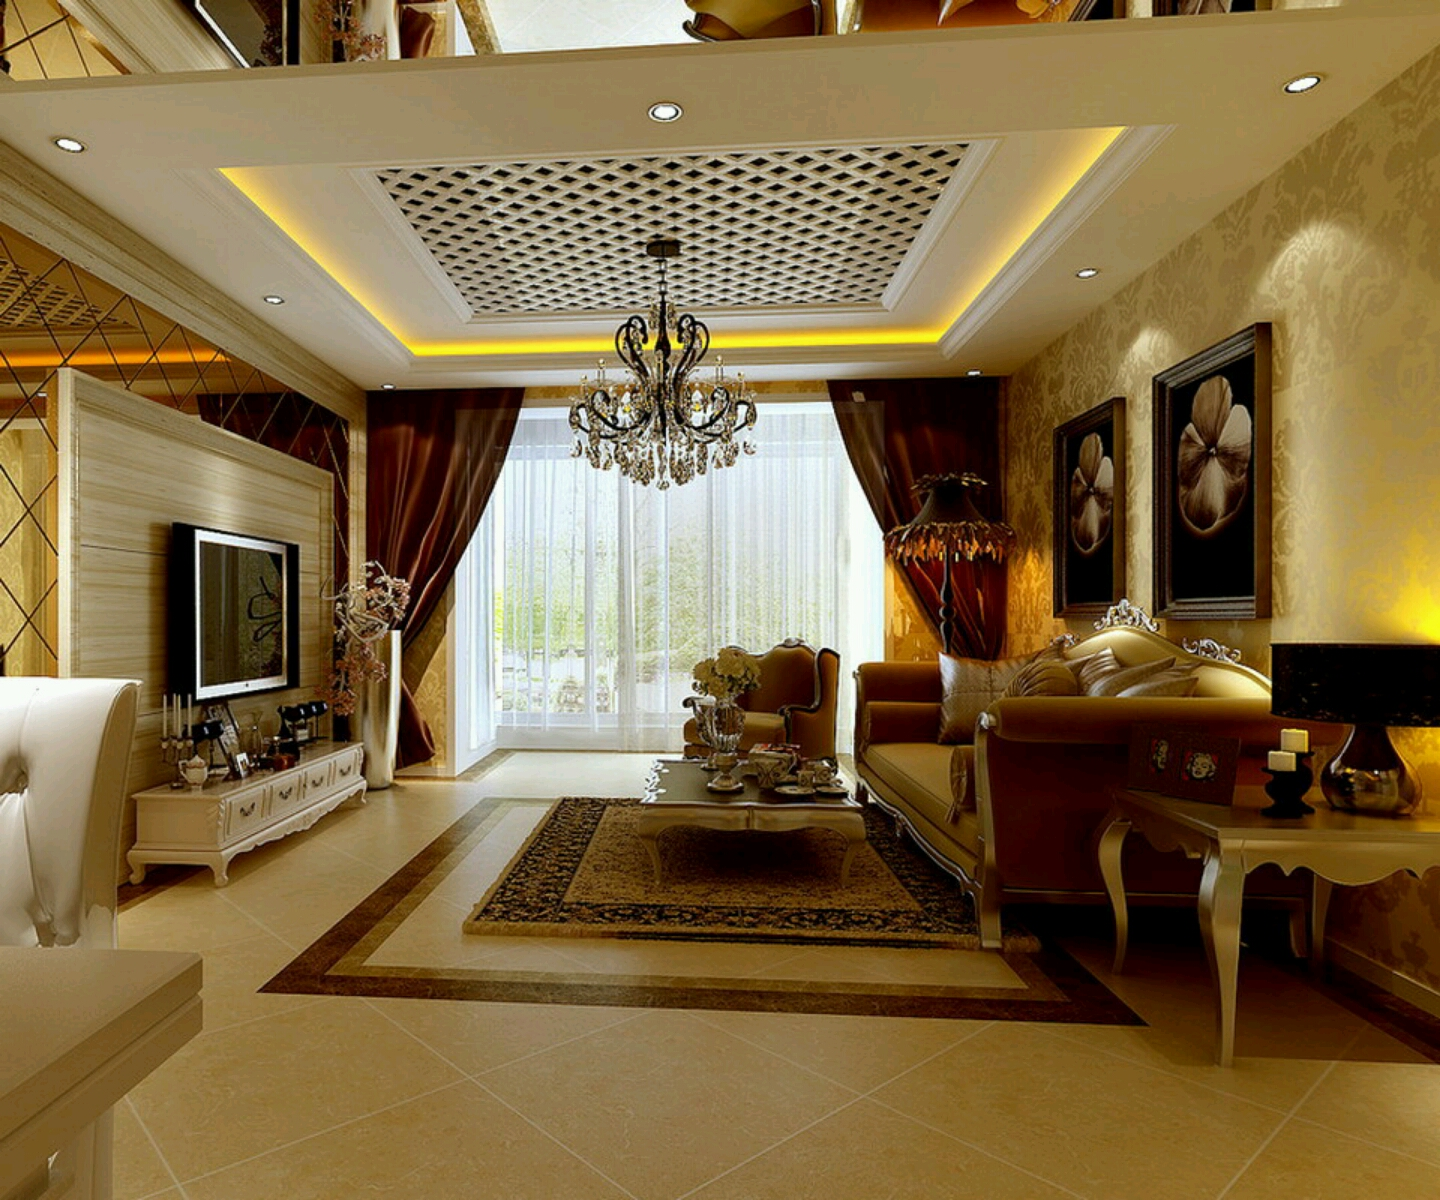 New home designs latest luxury homes interior decoration for Drawing room interior ideas